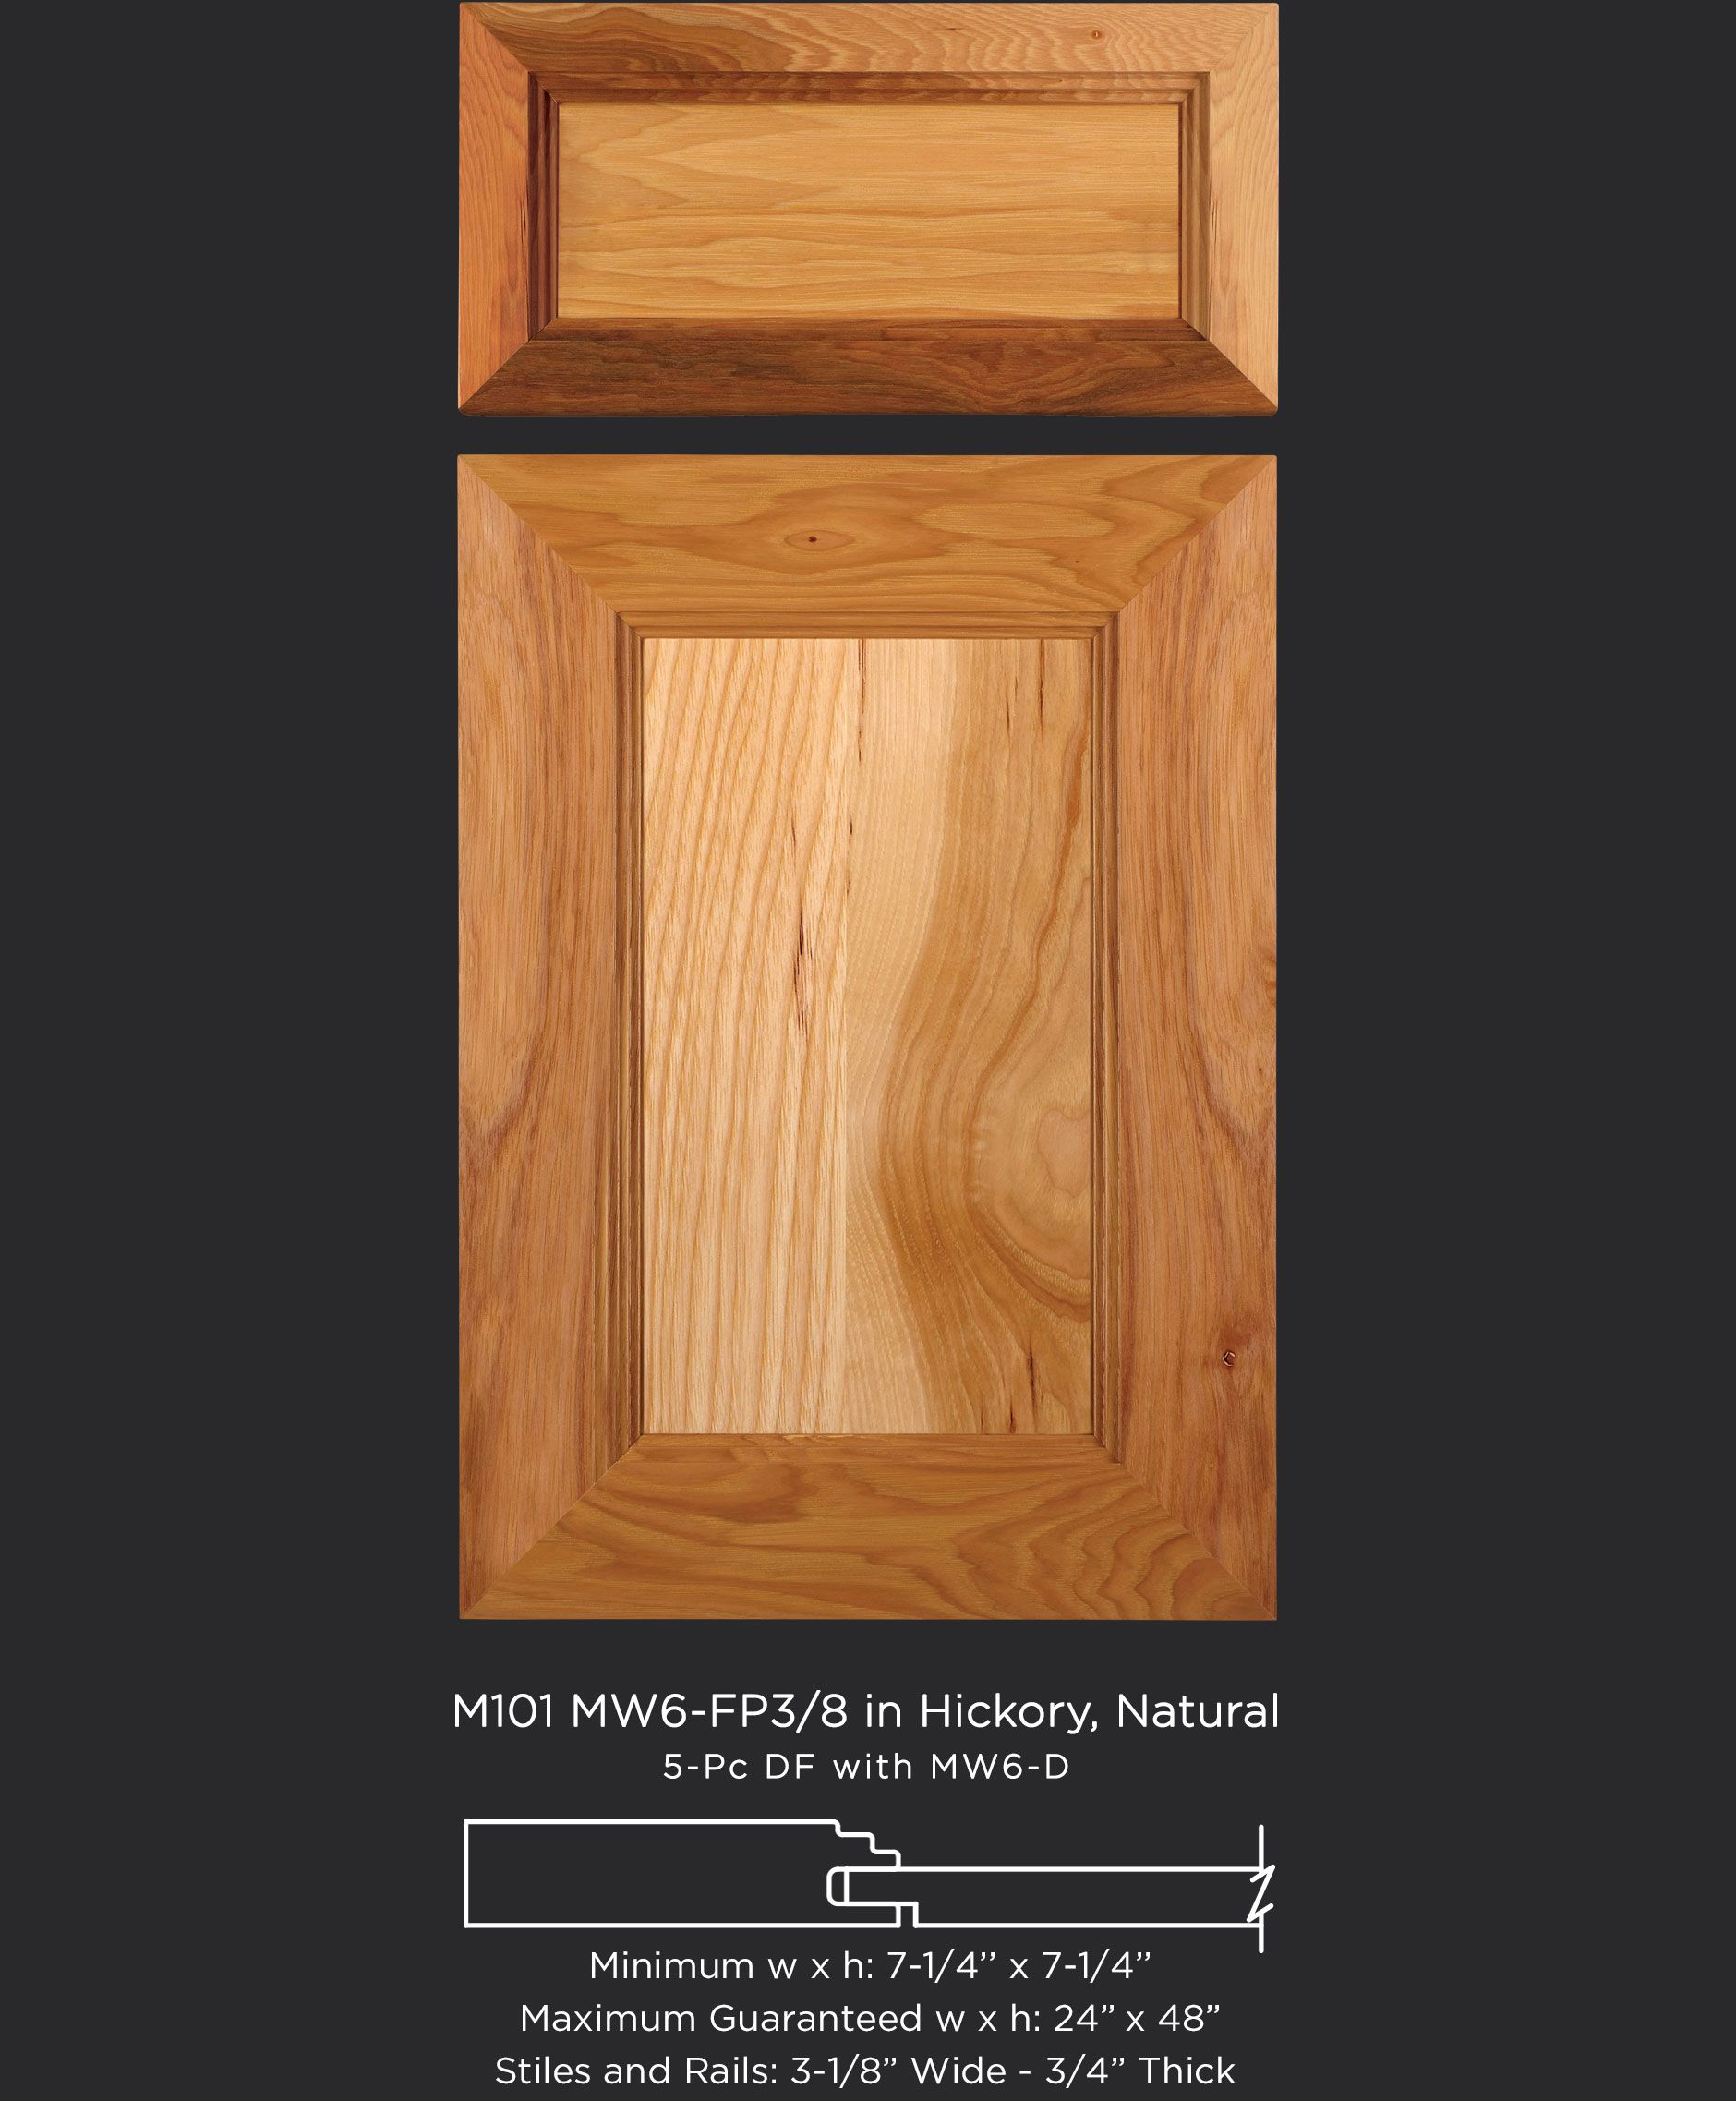 Mitered Cabinet Door M101 Mw6 Fp38 In Hickory Natural And 5 Piece